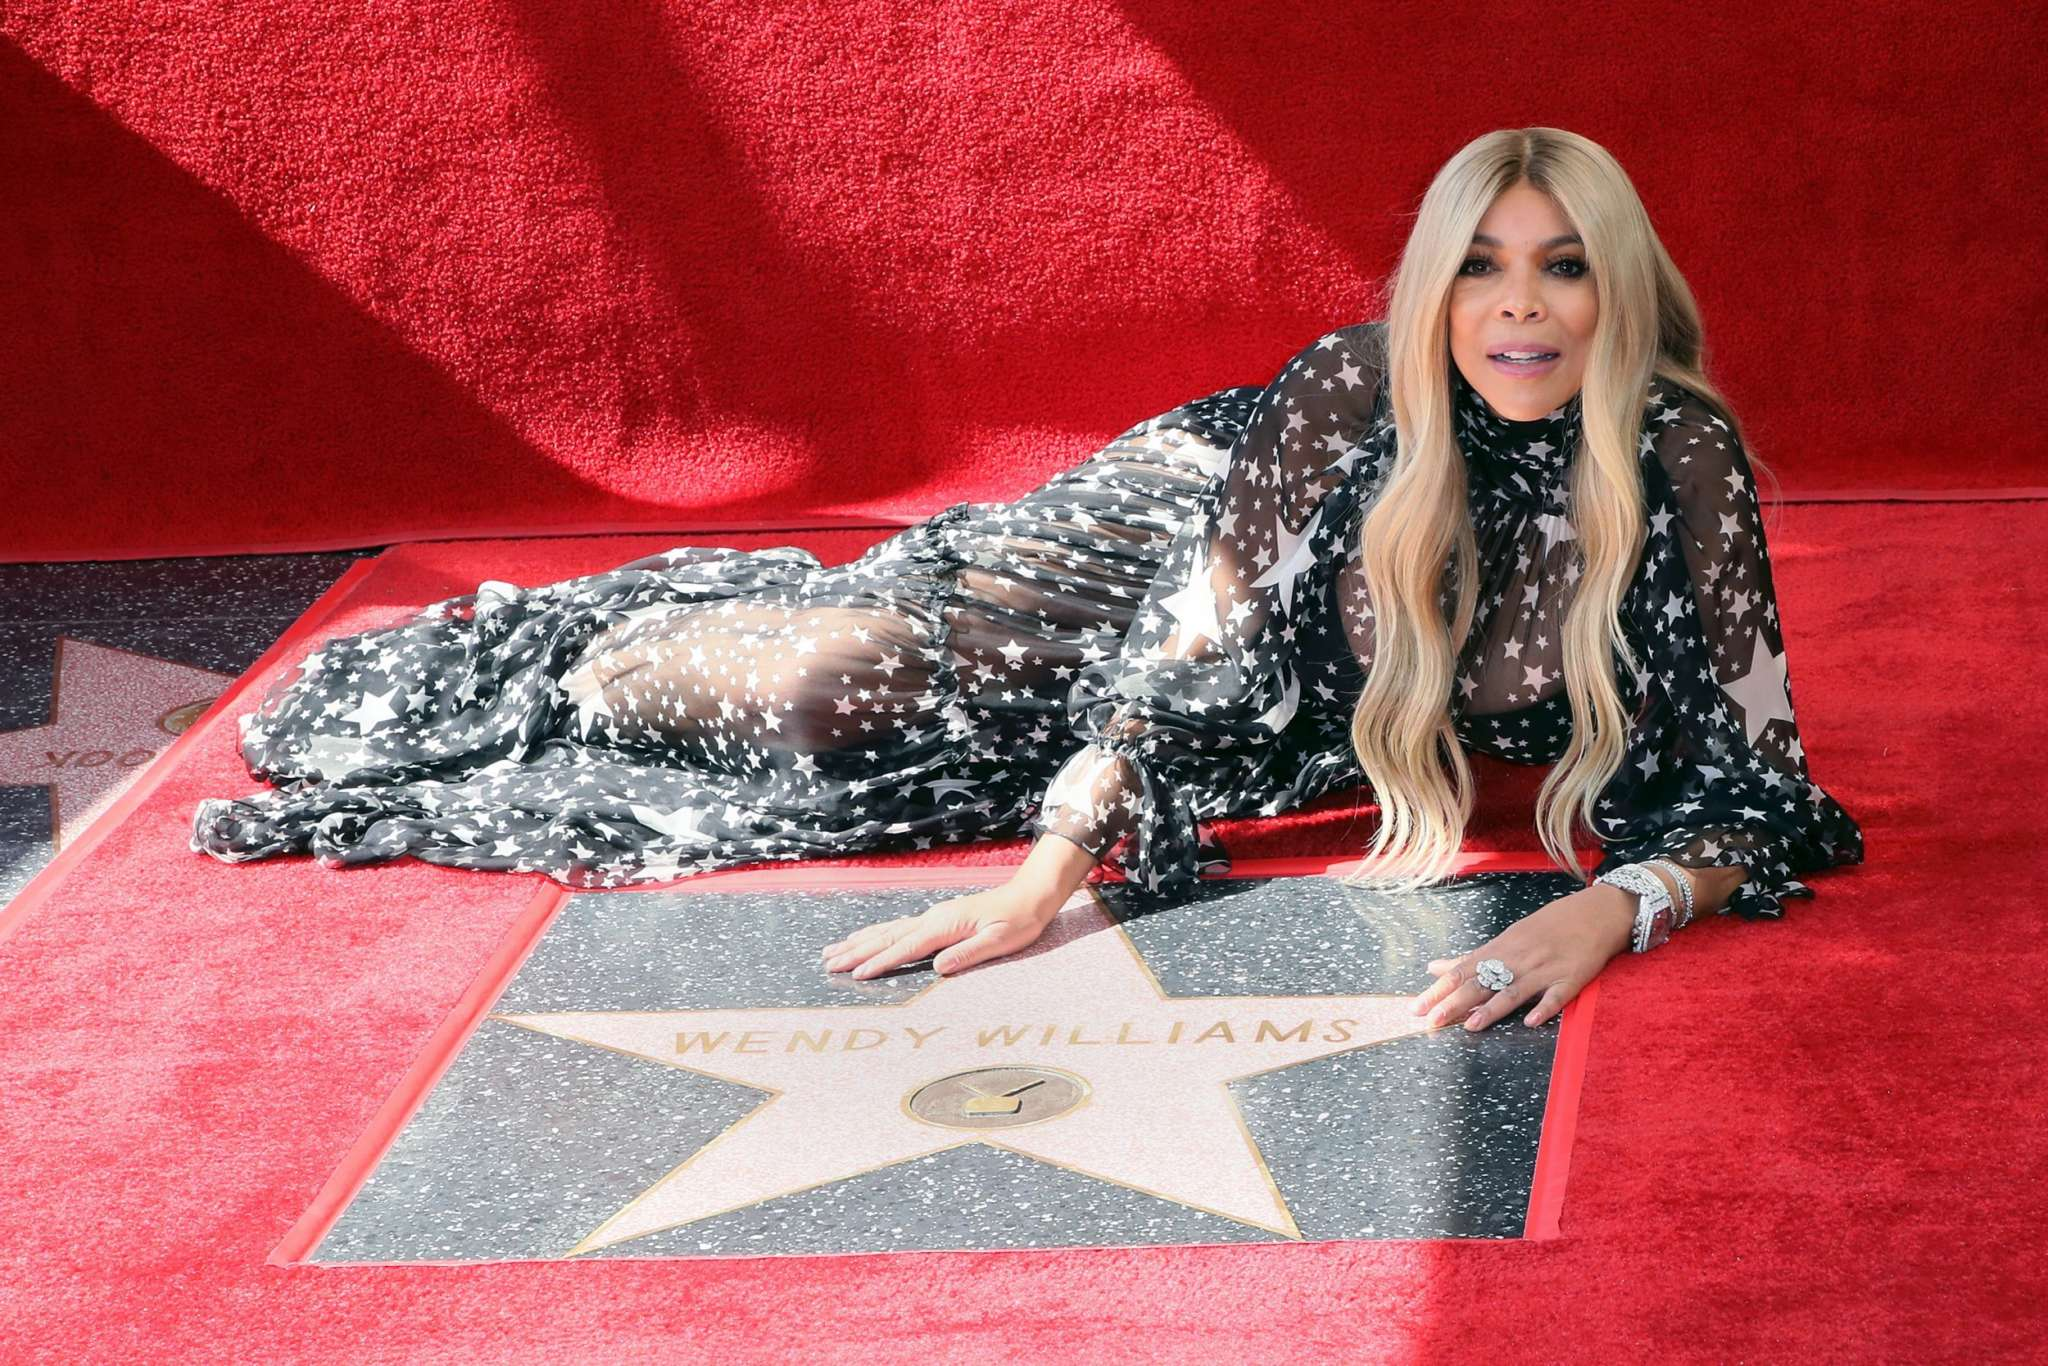 Wendy Williams Receives A Star On The Hollywood Walk Of Fame